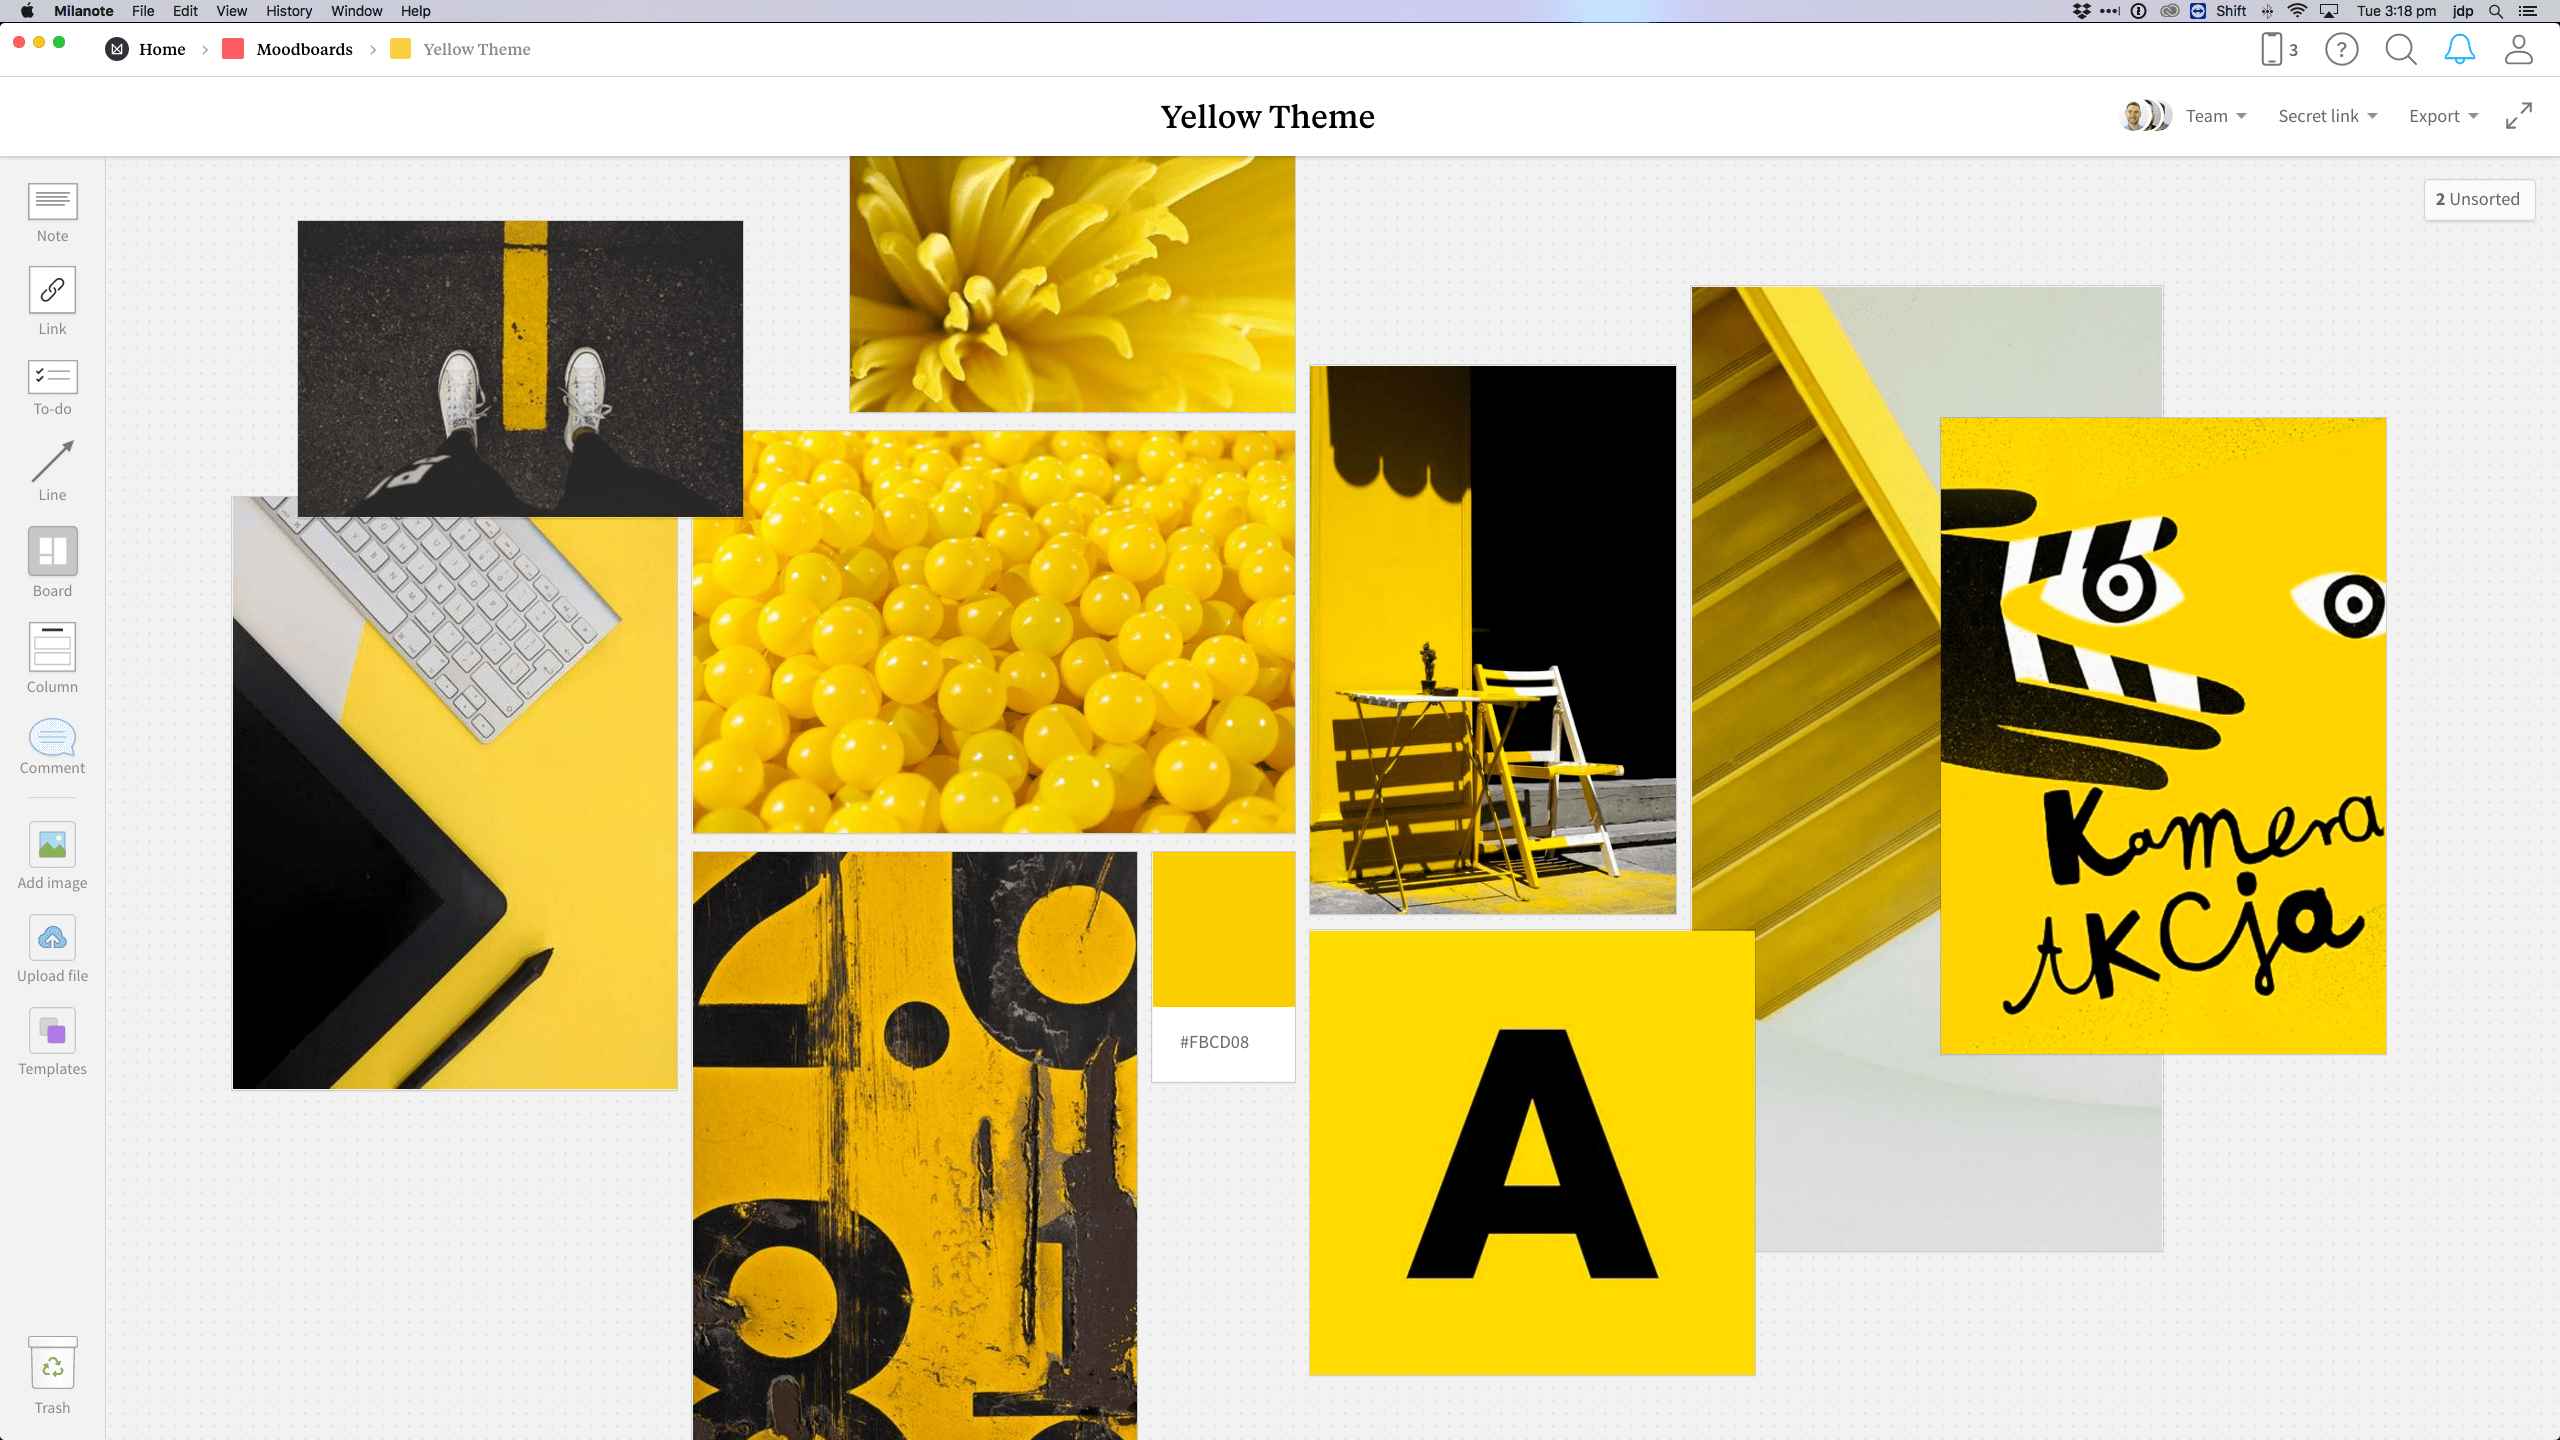 Completed Graphic Design Moodboard template in Milanote app